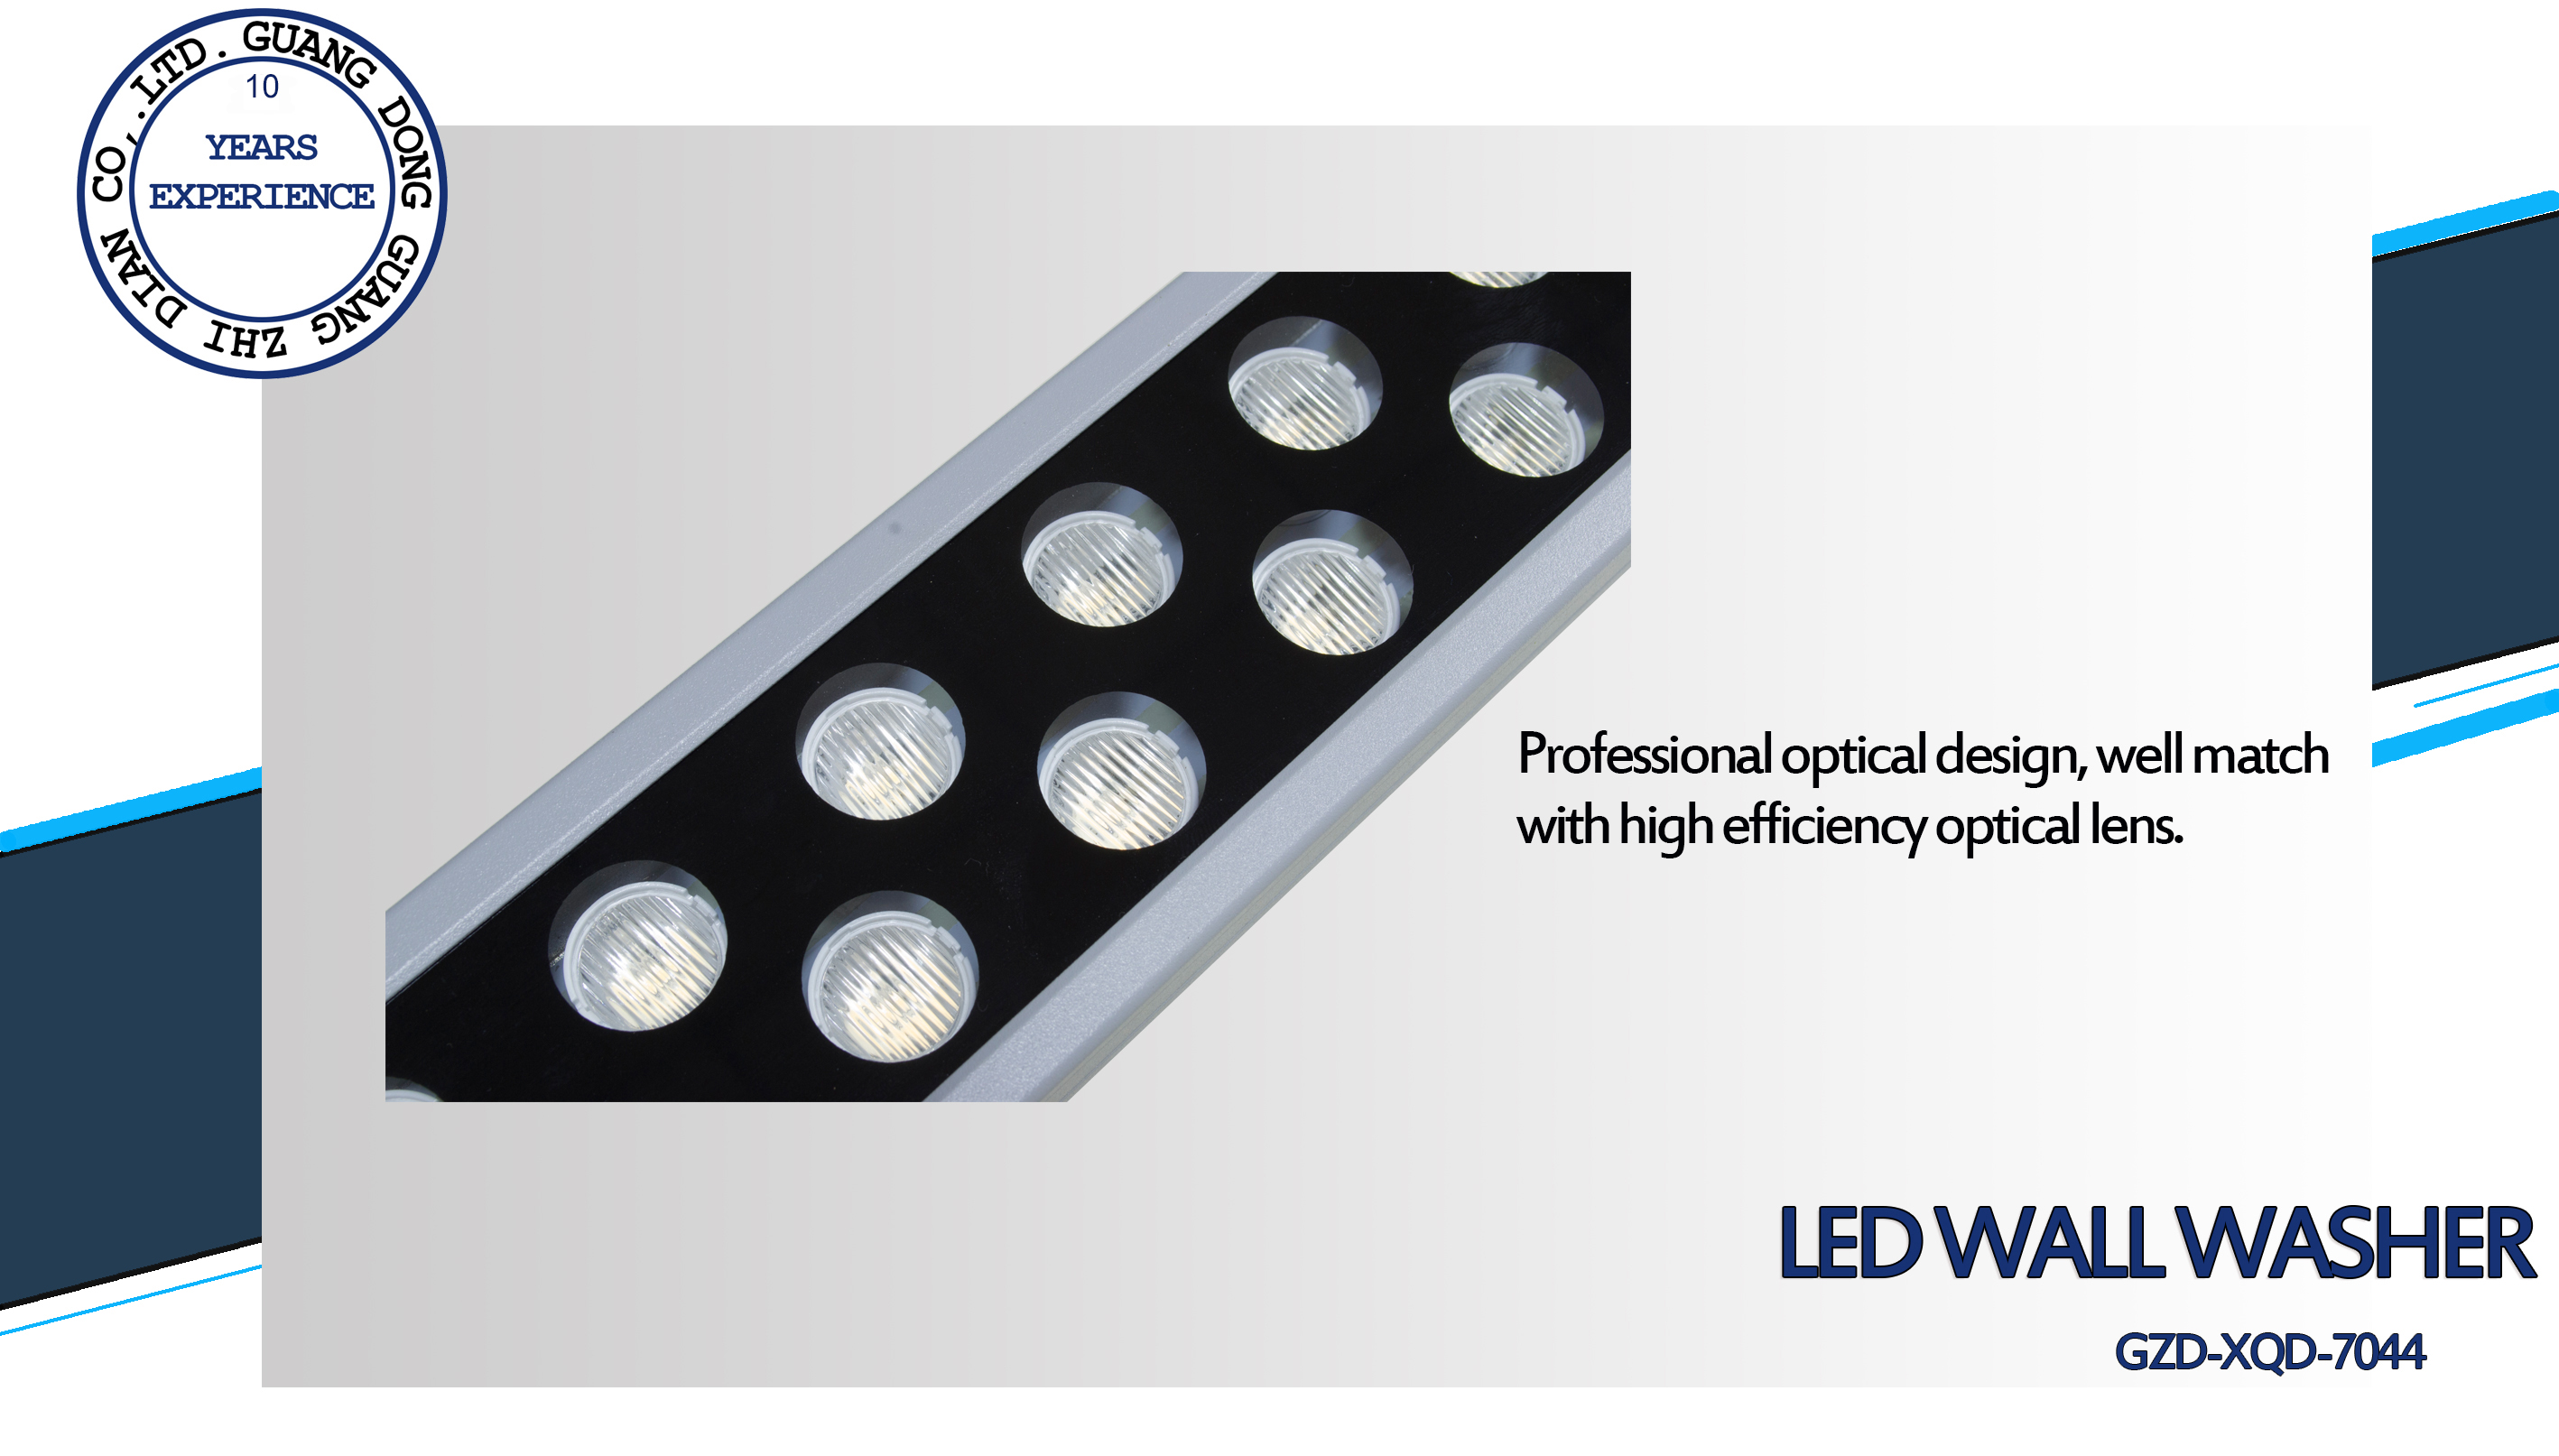 3 led wall washer